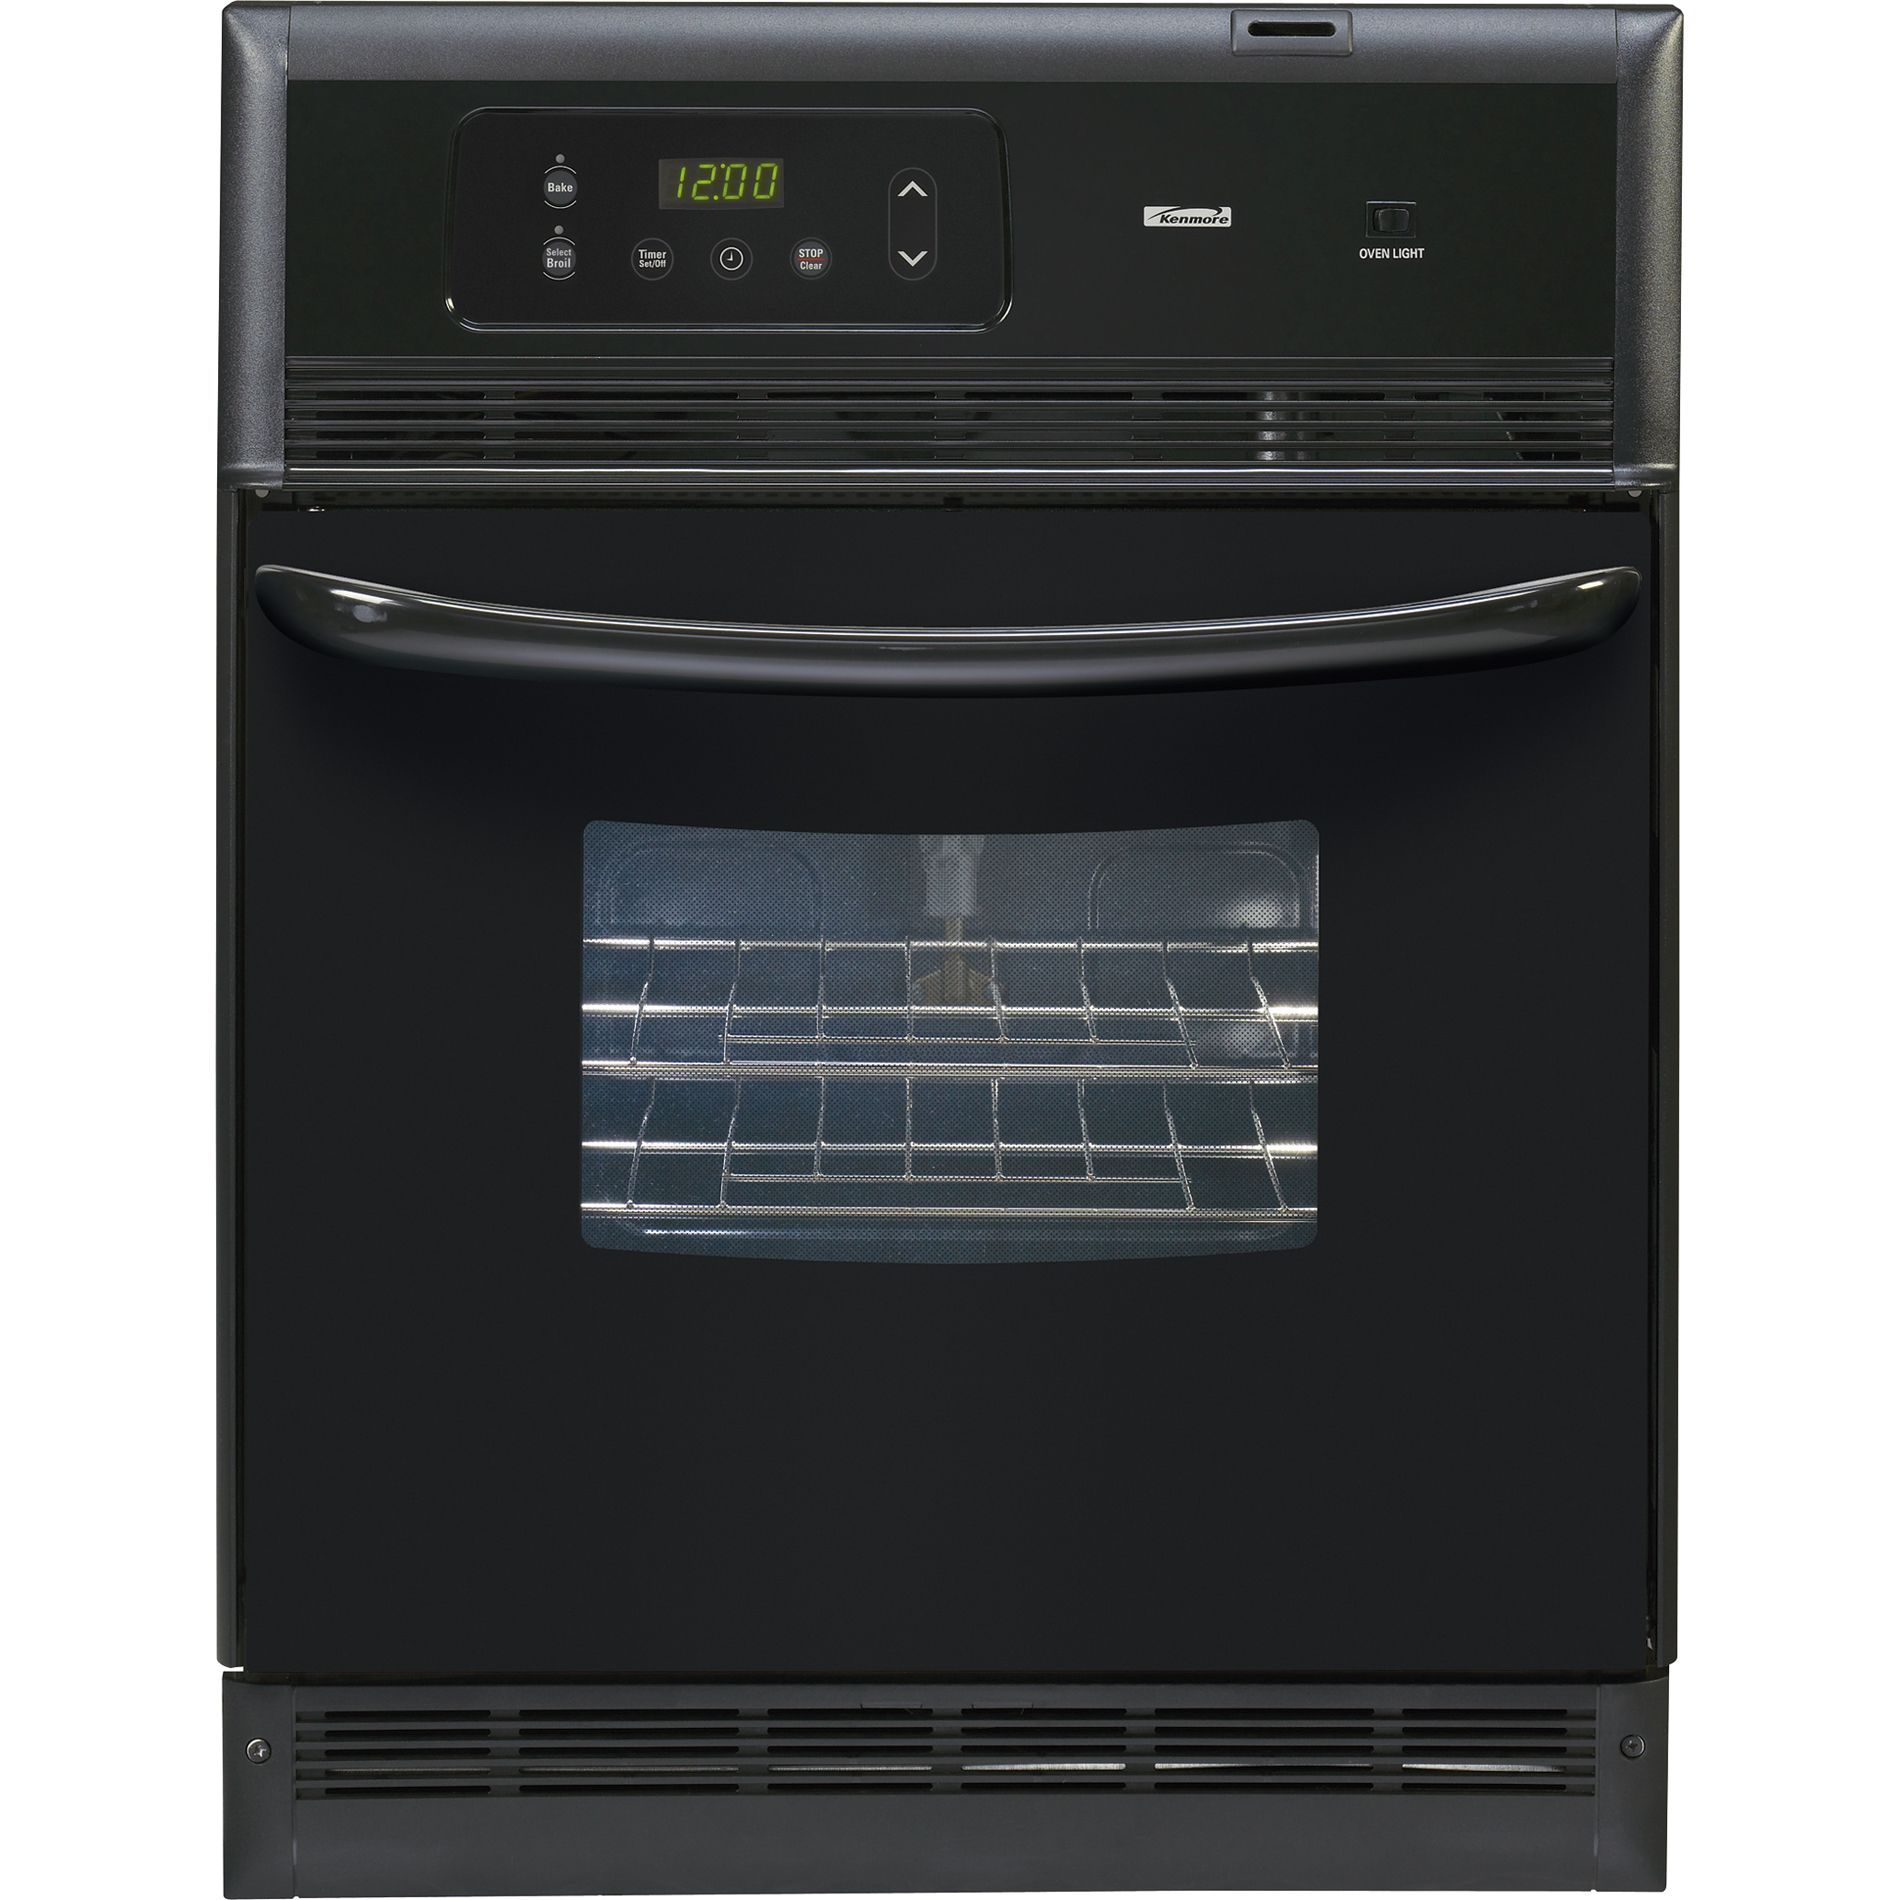 Kenmore 40439 24 Manual Clean Wall Oven